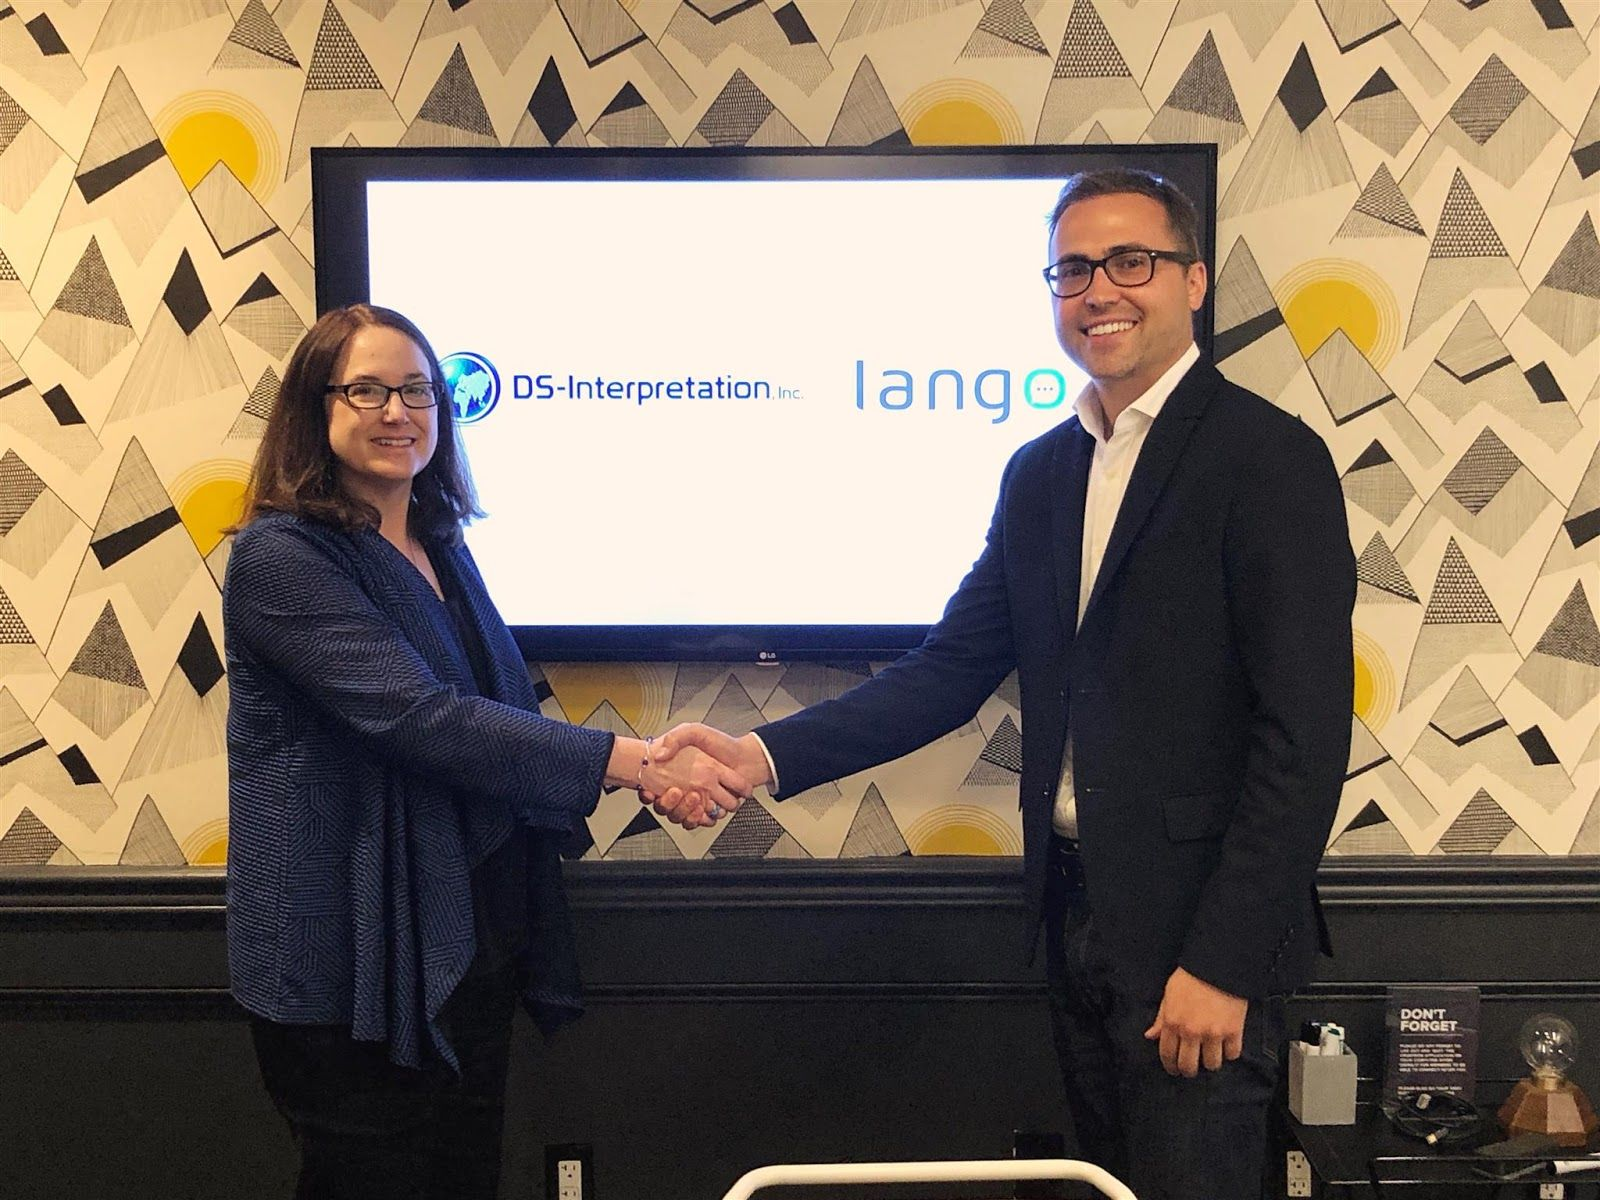 DS-Interpretation, Inc. President Naomi Bowman and Lango CEO Josh Daneshforooz.